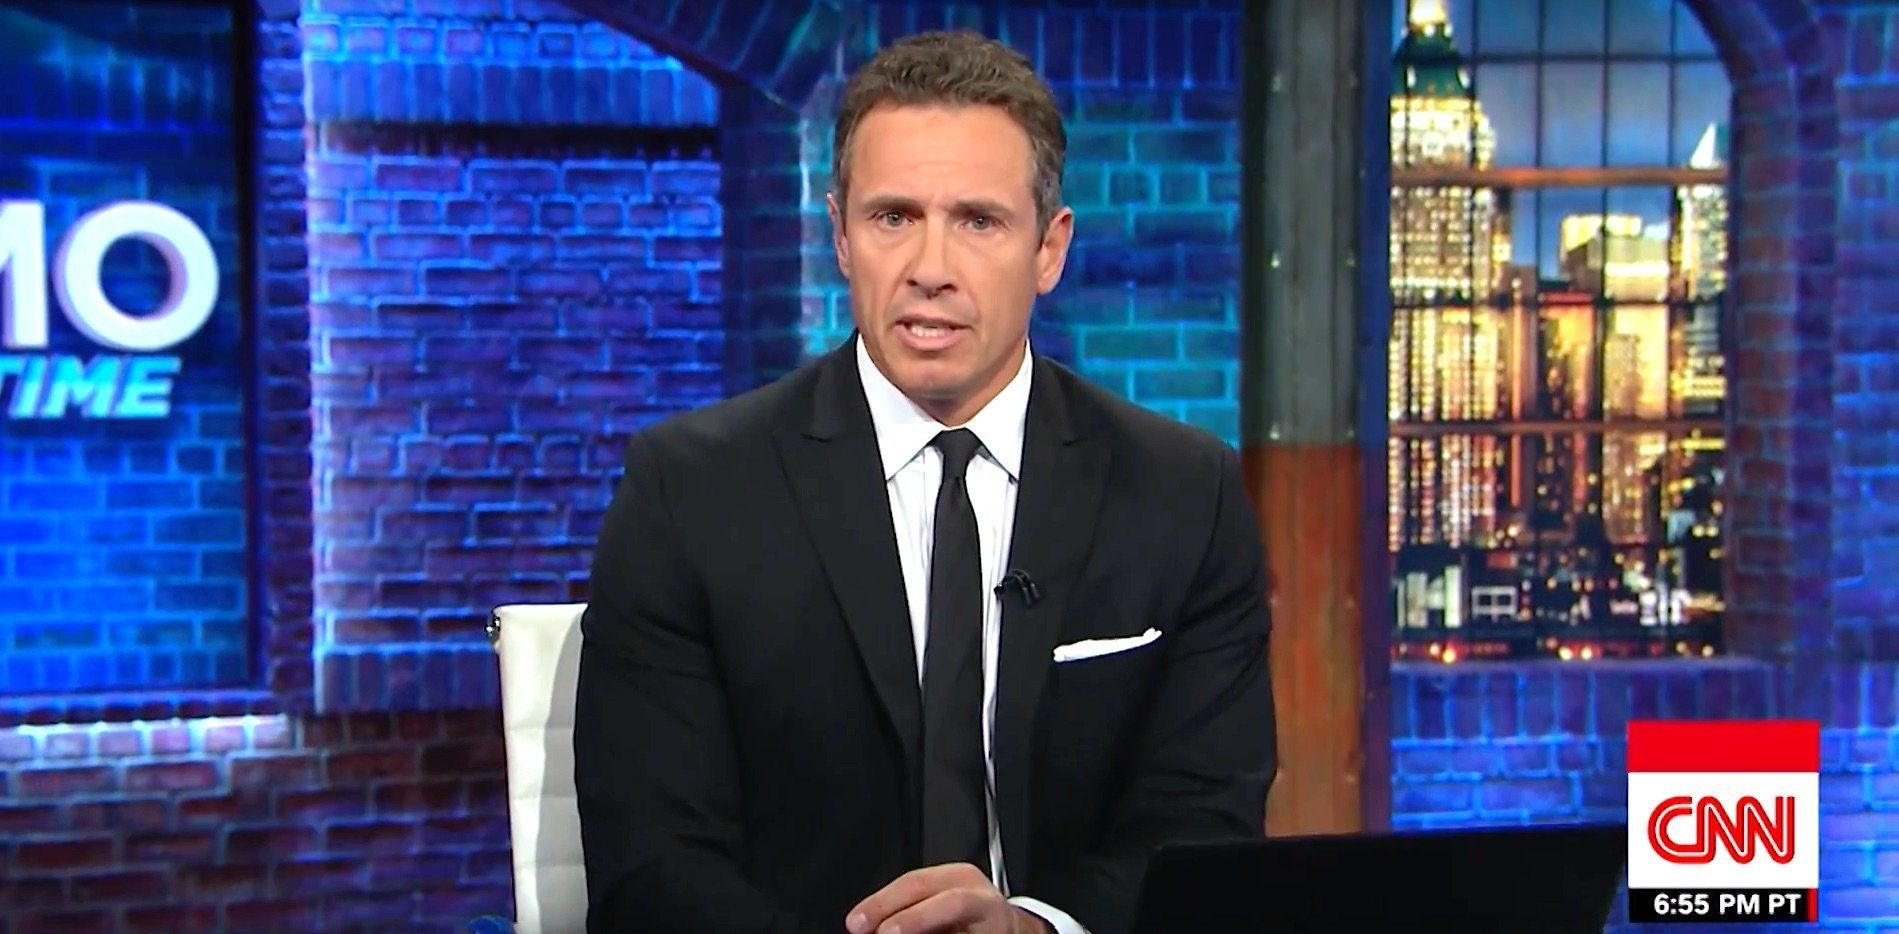 Chris Cuomo Nails Why Trump Supporters Defend Everything He